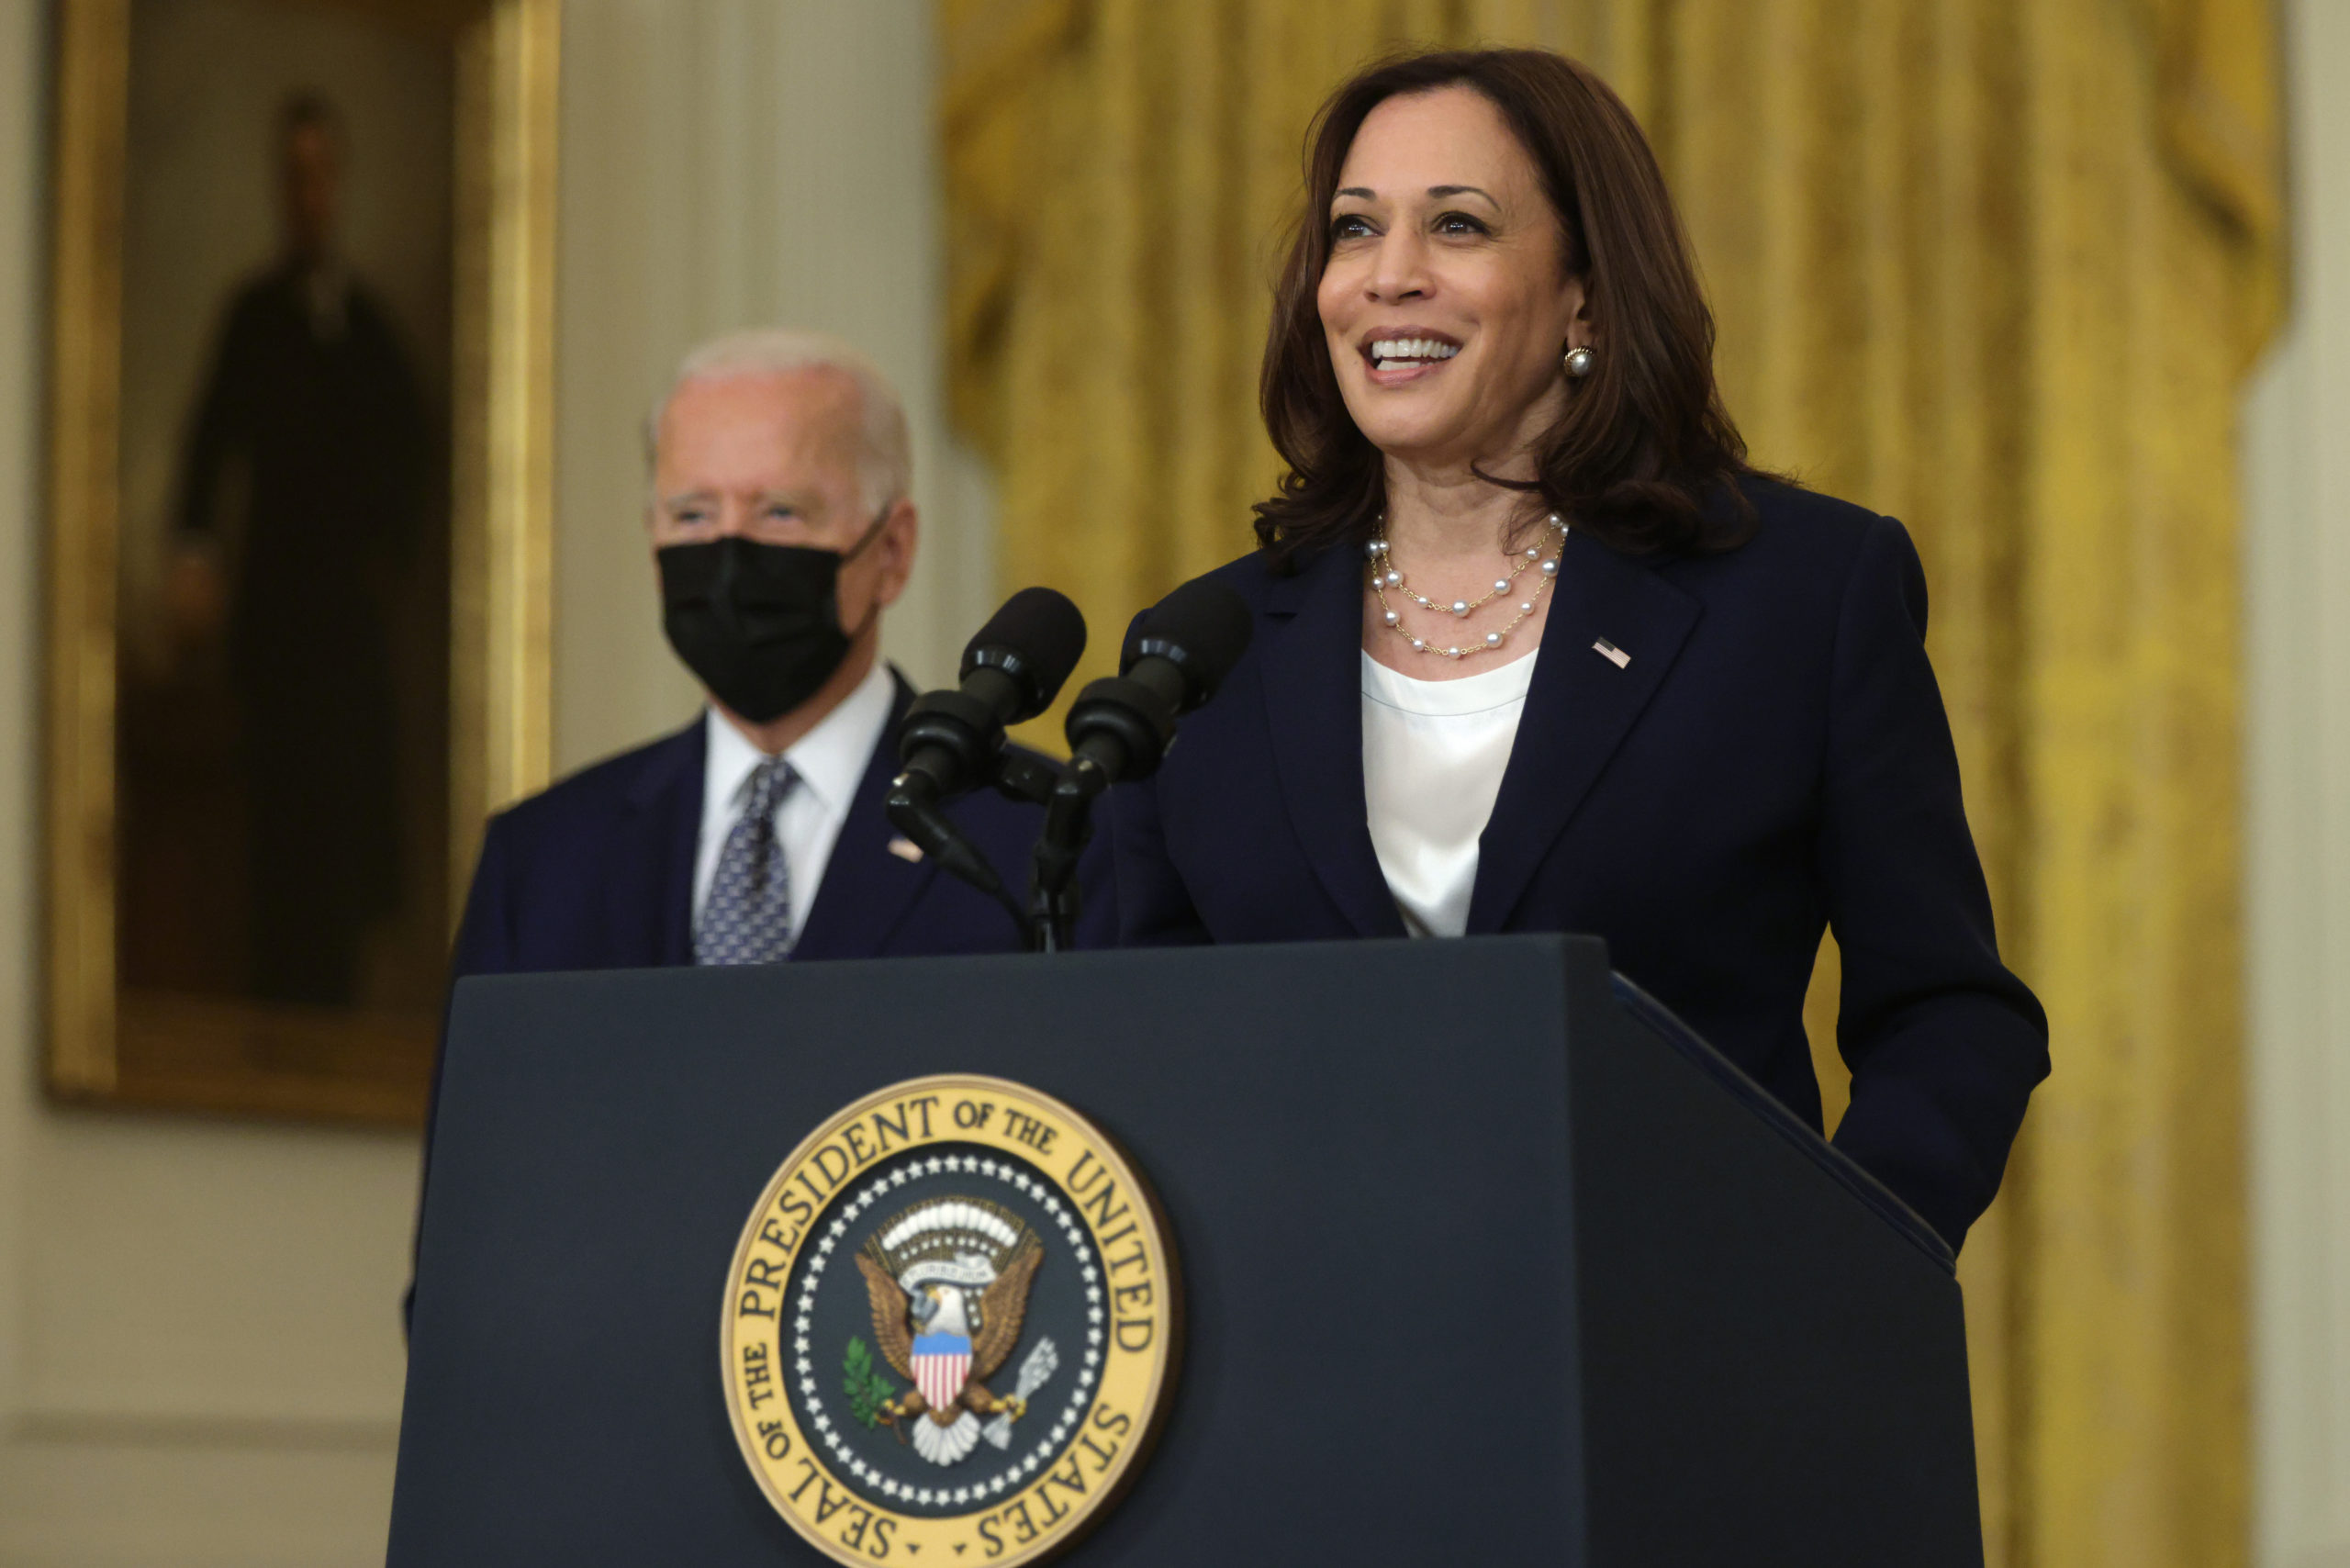 WASHINGTON, DC - AUGUST 10: U.S. Vice President Kamala Harris (R) speaks as President Joe Biden (L) listens during an event on Senate passage of the Infrastructure Investment and Jobs Act in the East Room of the White House August 10, 2021 in Washington, DC. The Senate has passed the bipartisan infrastructure bill with a vote of 69-30. (Photo by Alex Wong/Getty Images)